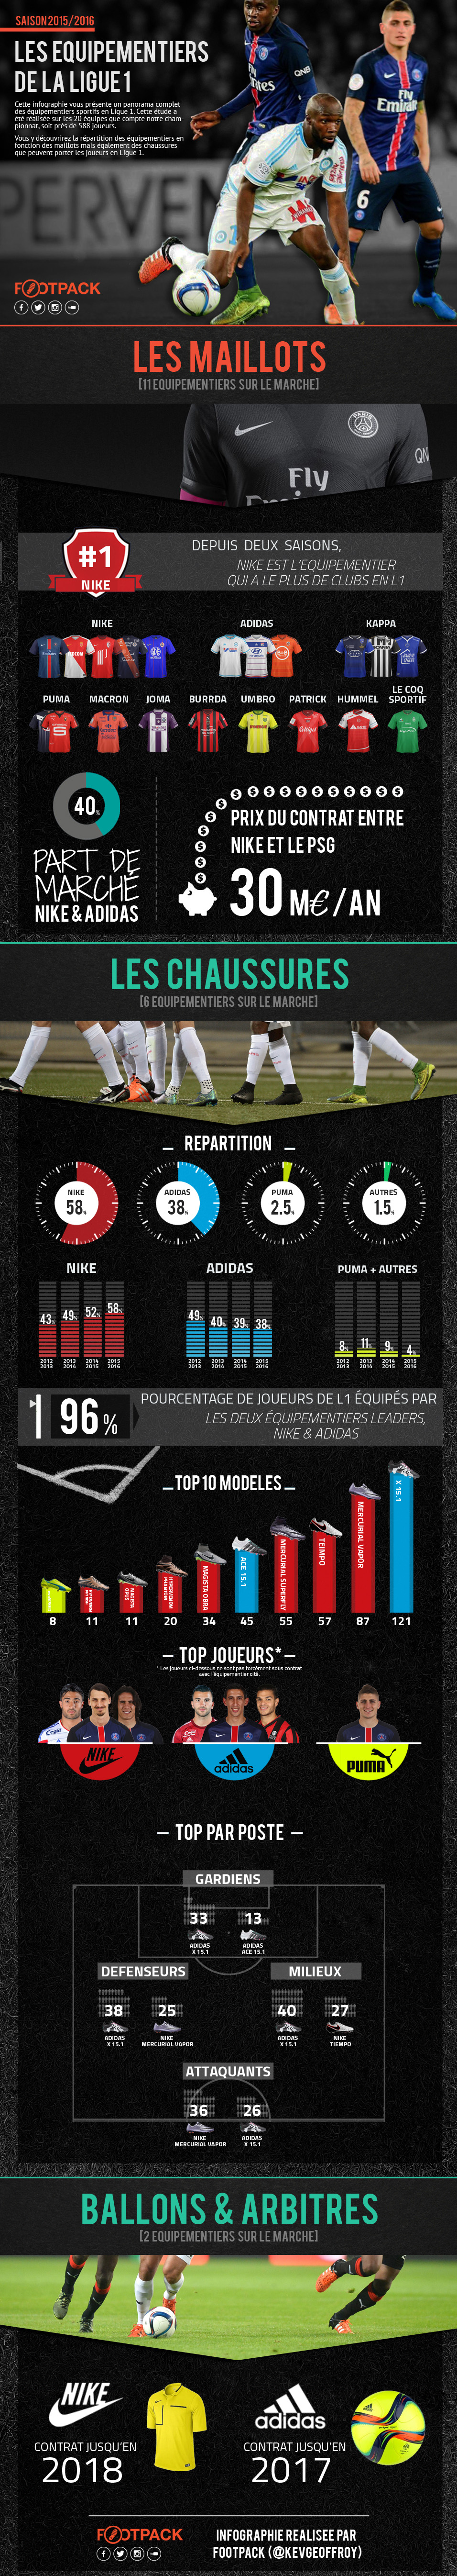 FootPack - Infographie 2015-2016